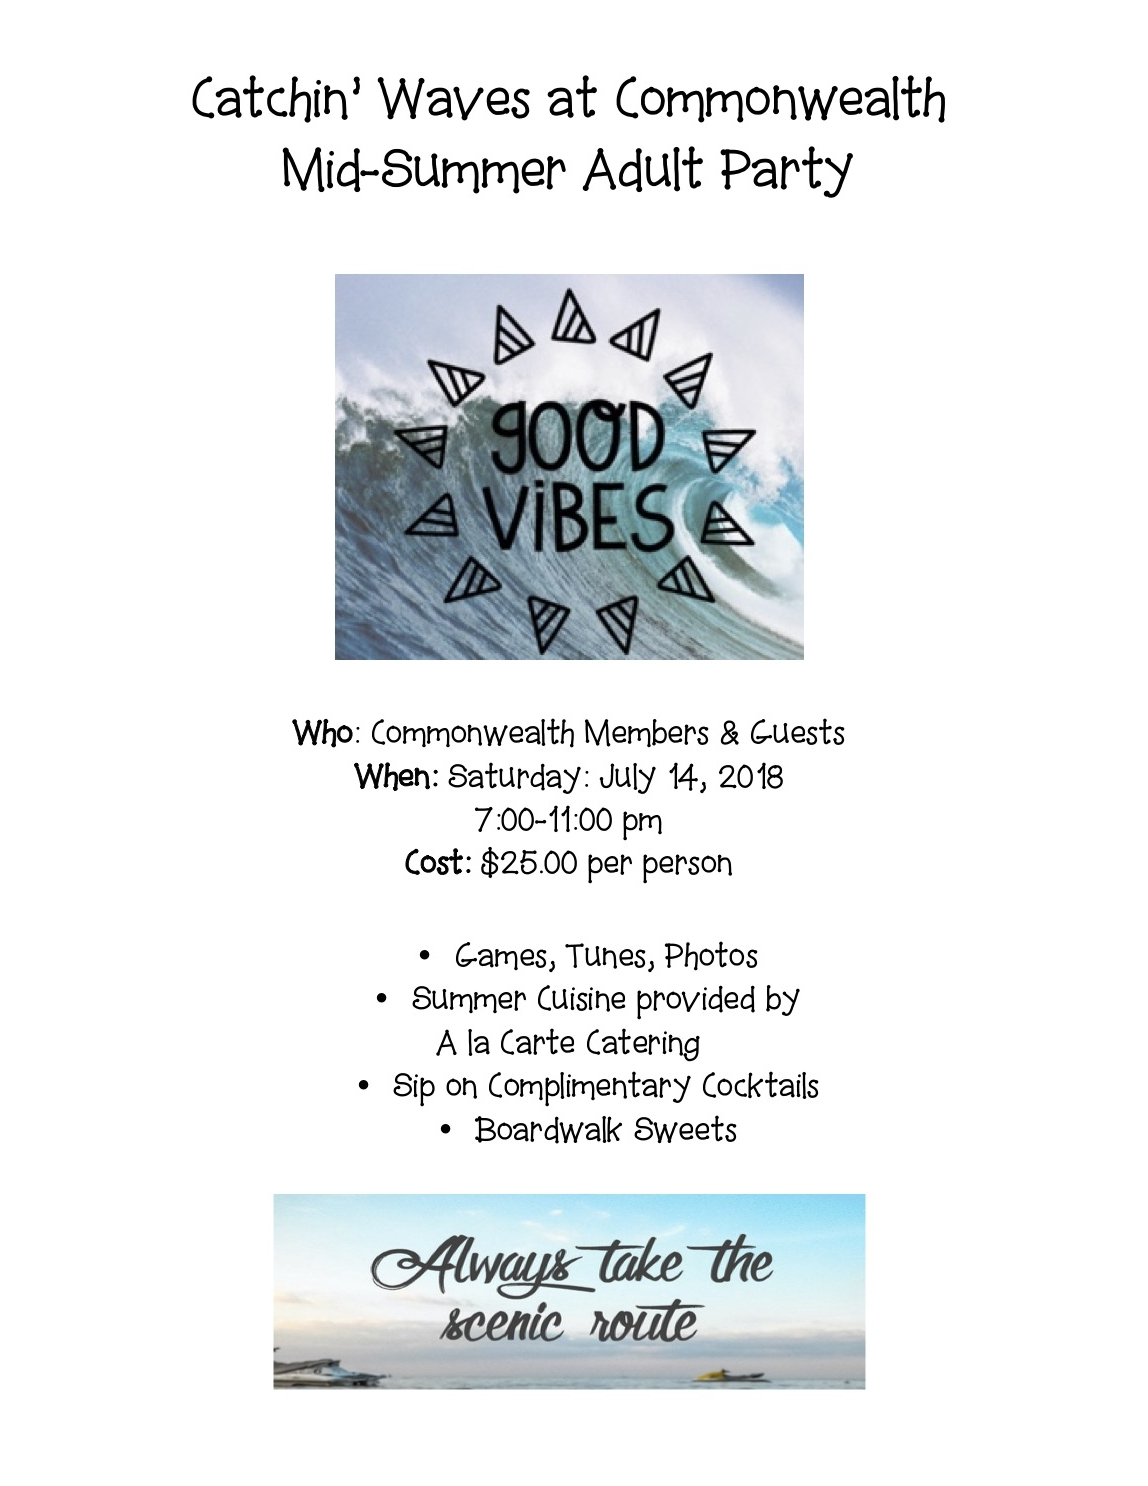 Catchin' Waves at Commonwealth Adult Party Flyer .jpg